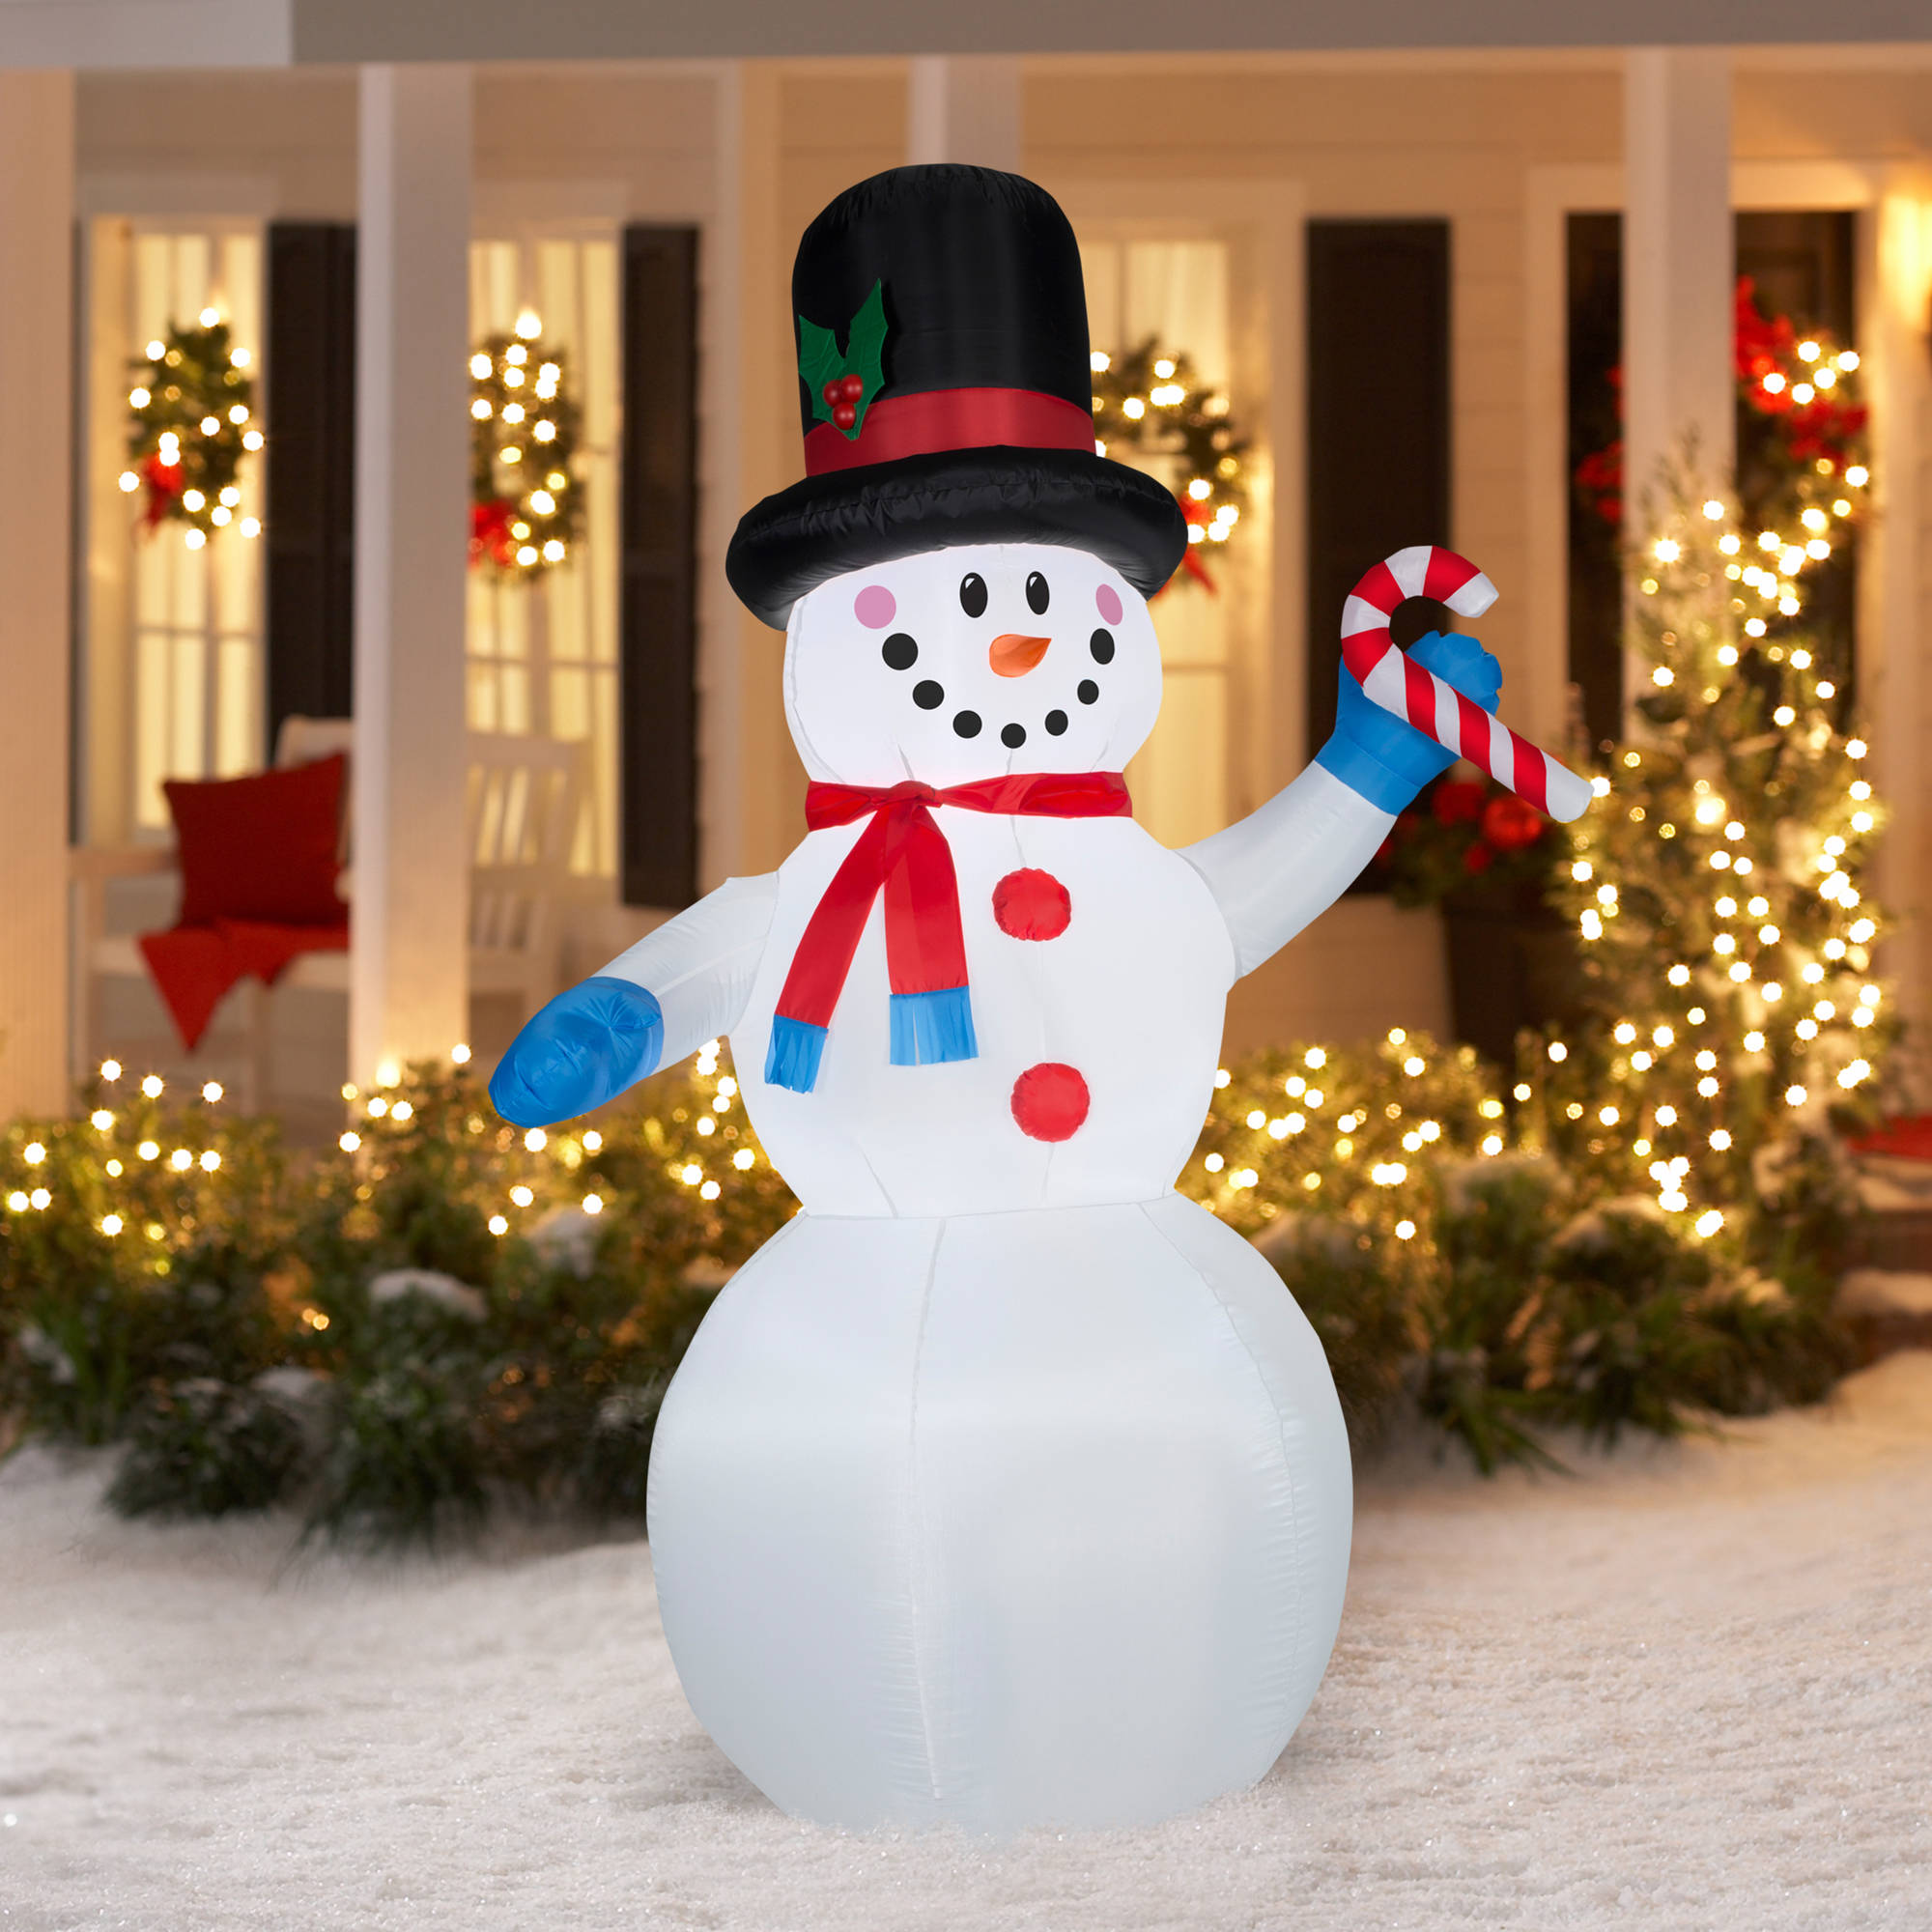 gemmy airblown christmas inflatables 7 festive snowman walmartcom - Walmart Outdoor Christmas Decorations